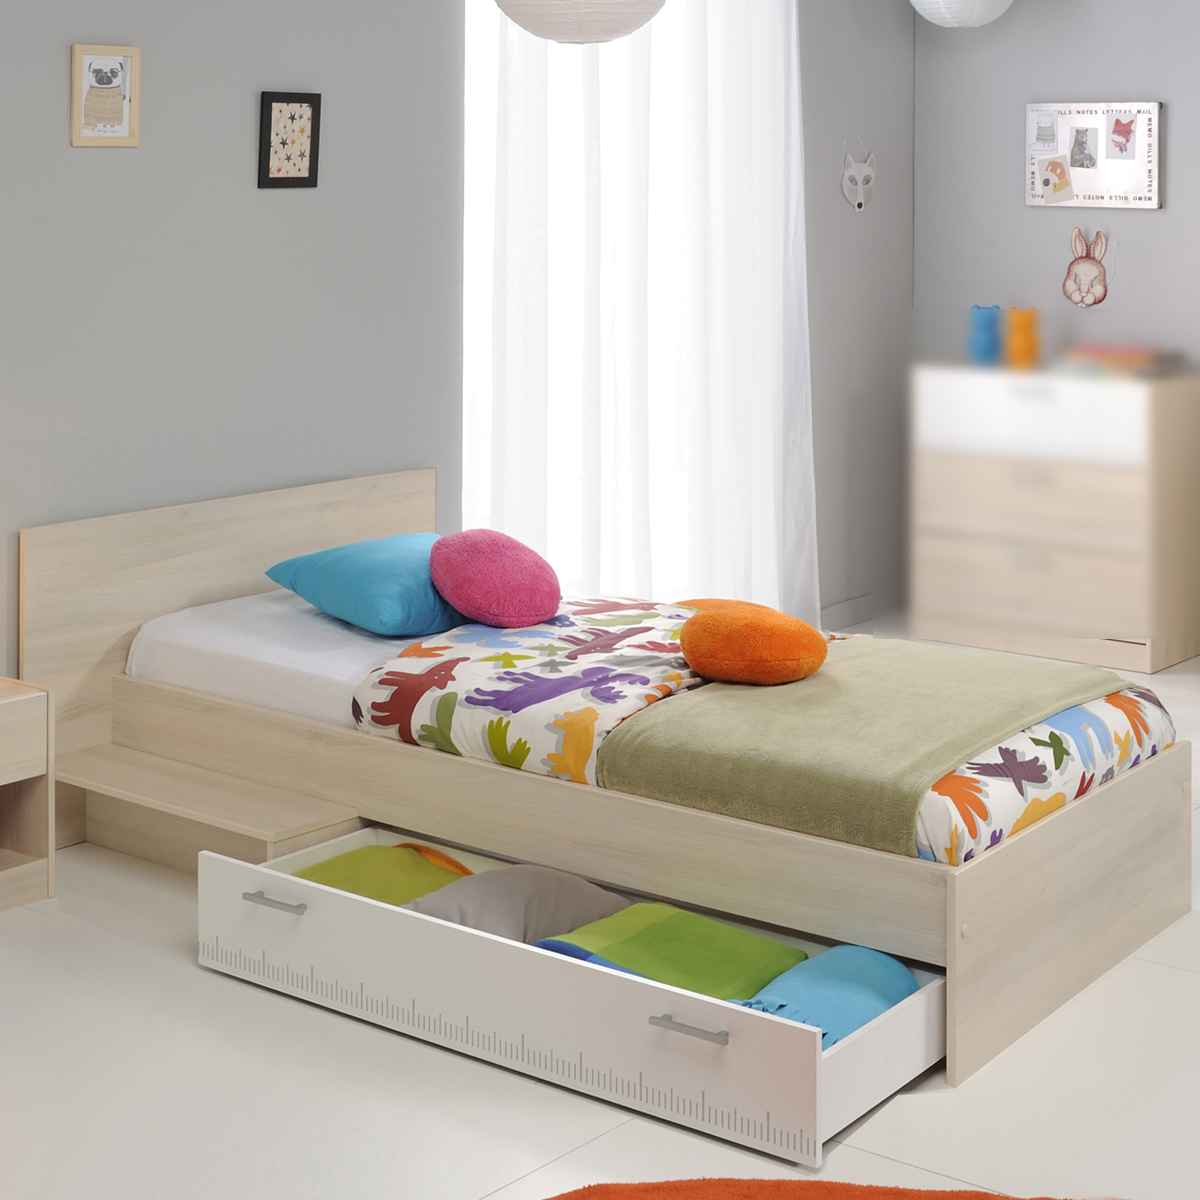 bett charly kinderbett stauraumbett jugendbett in akazie und wei 90x200 cm ebay. Black Bedroom Furniture Sets. Home Design Ideas